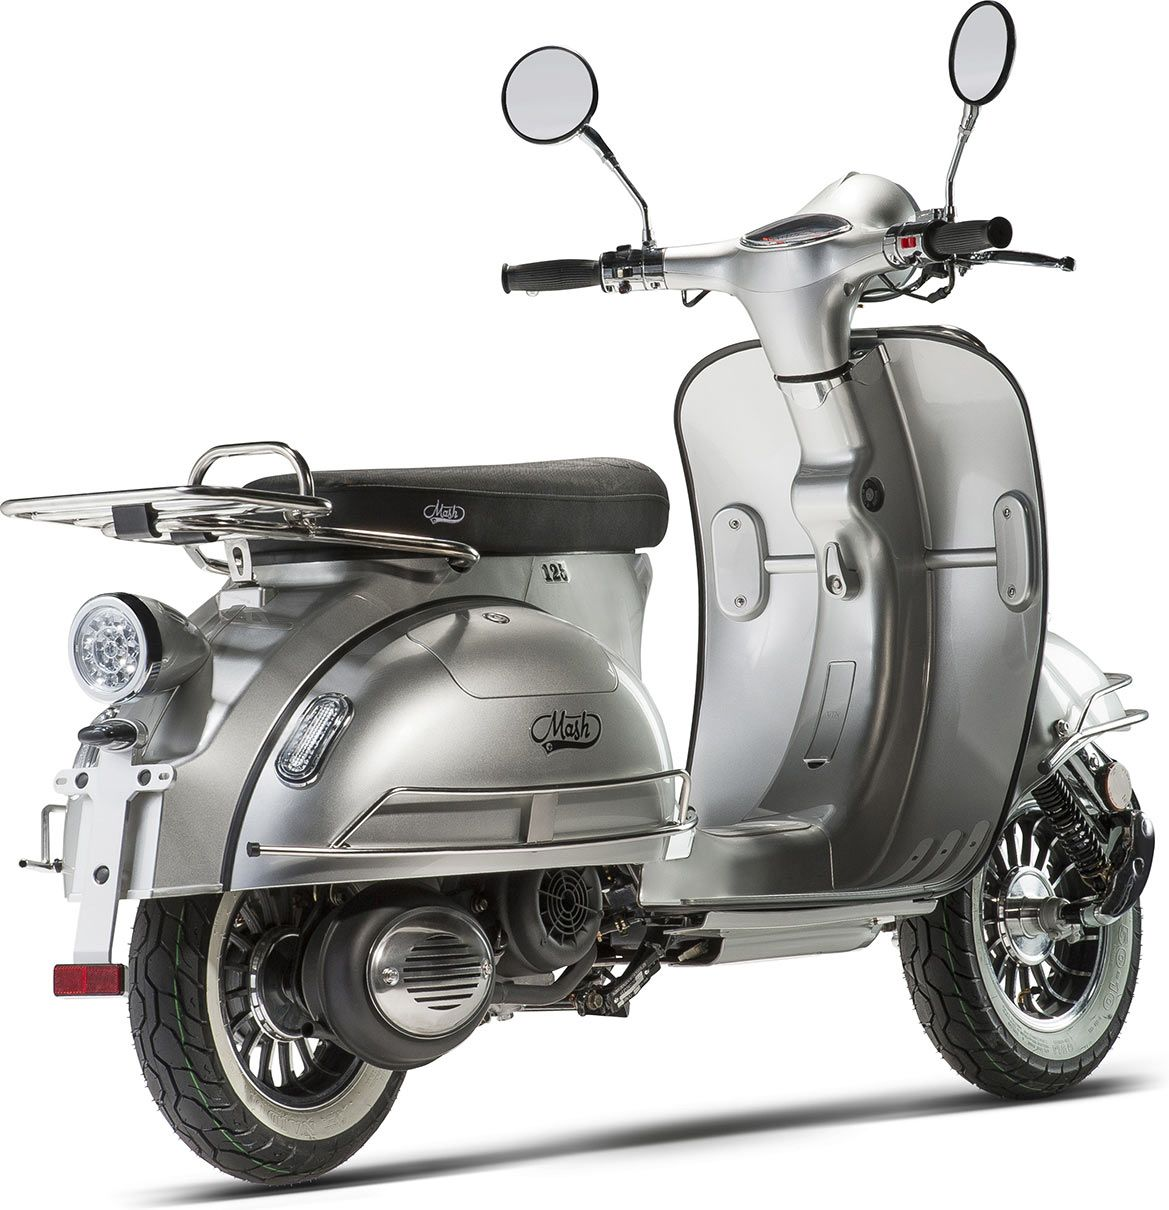 mash sixty 50 125 nouveau scooter r tro scooters and vespa. Black Bedroom Furniture Sets. Home Design Ideas